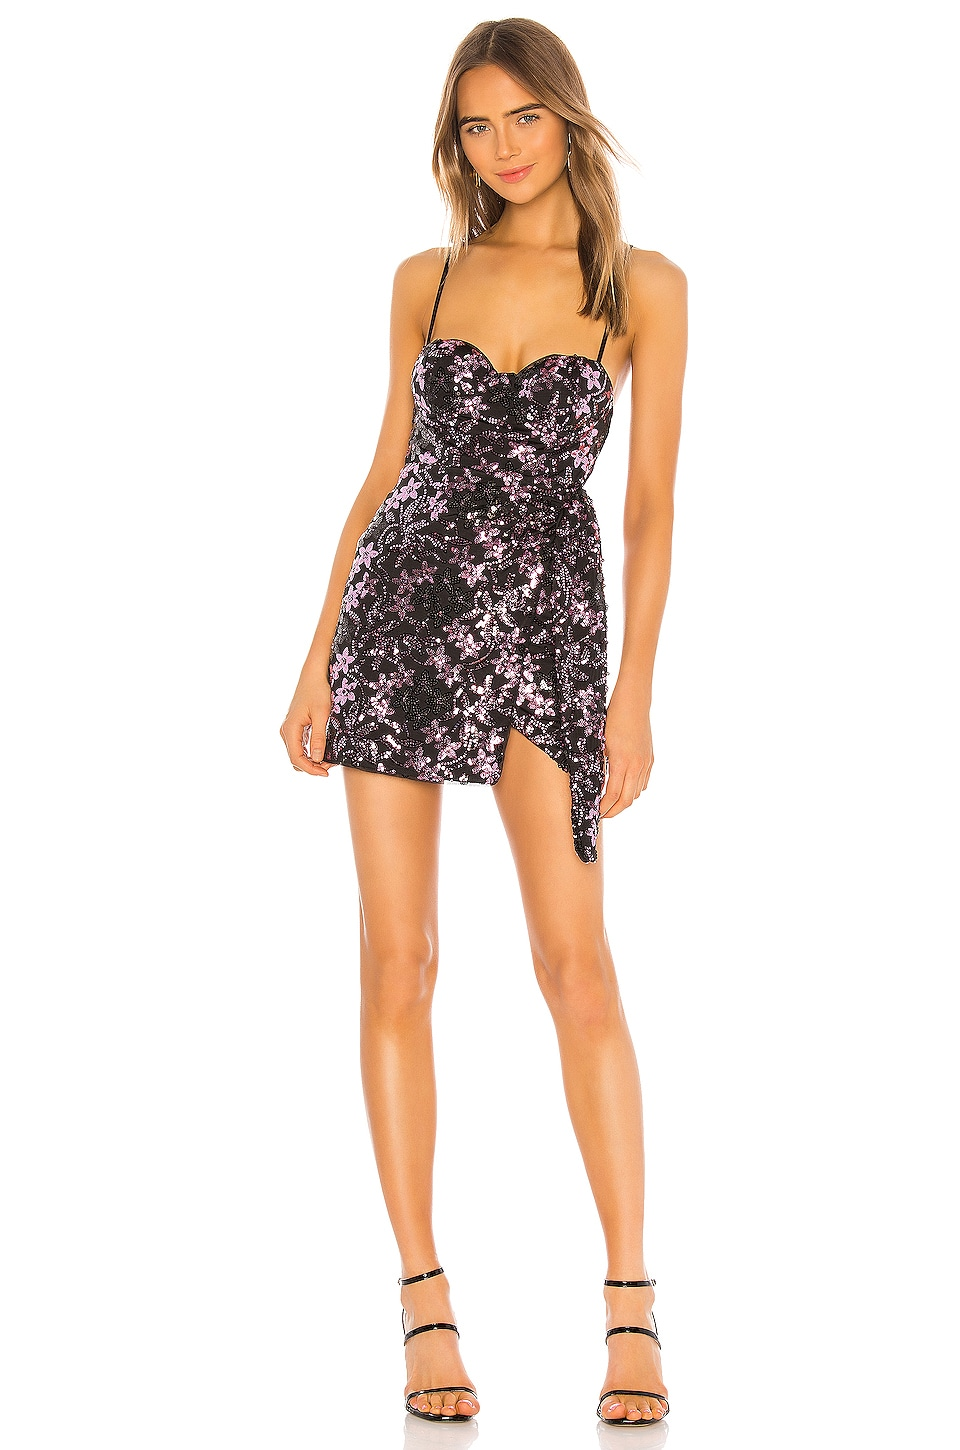 MAJORELLE Aida Mini Dress in Black Fucshia